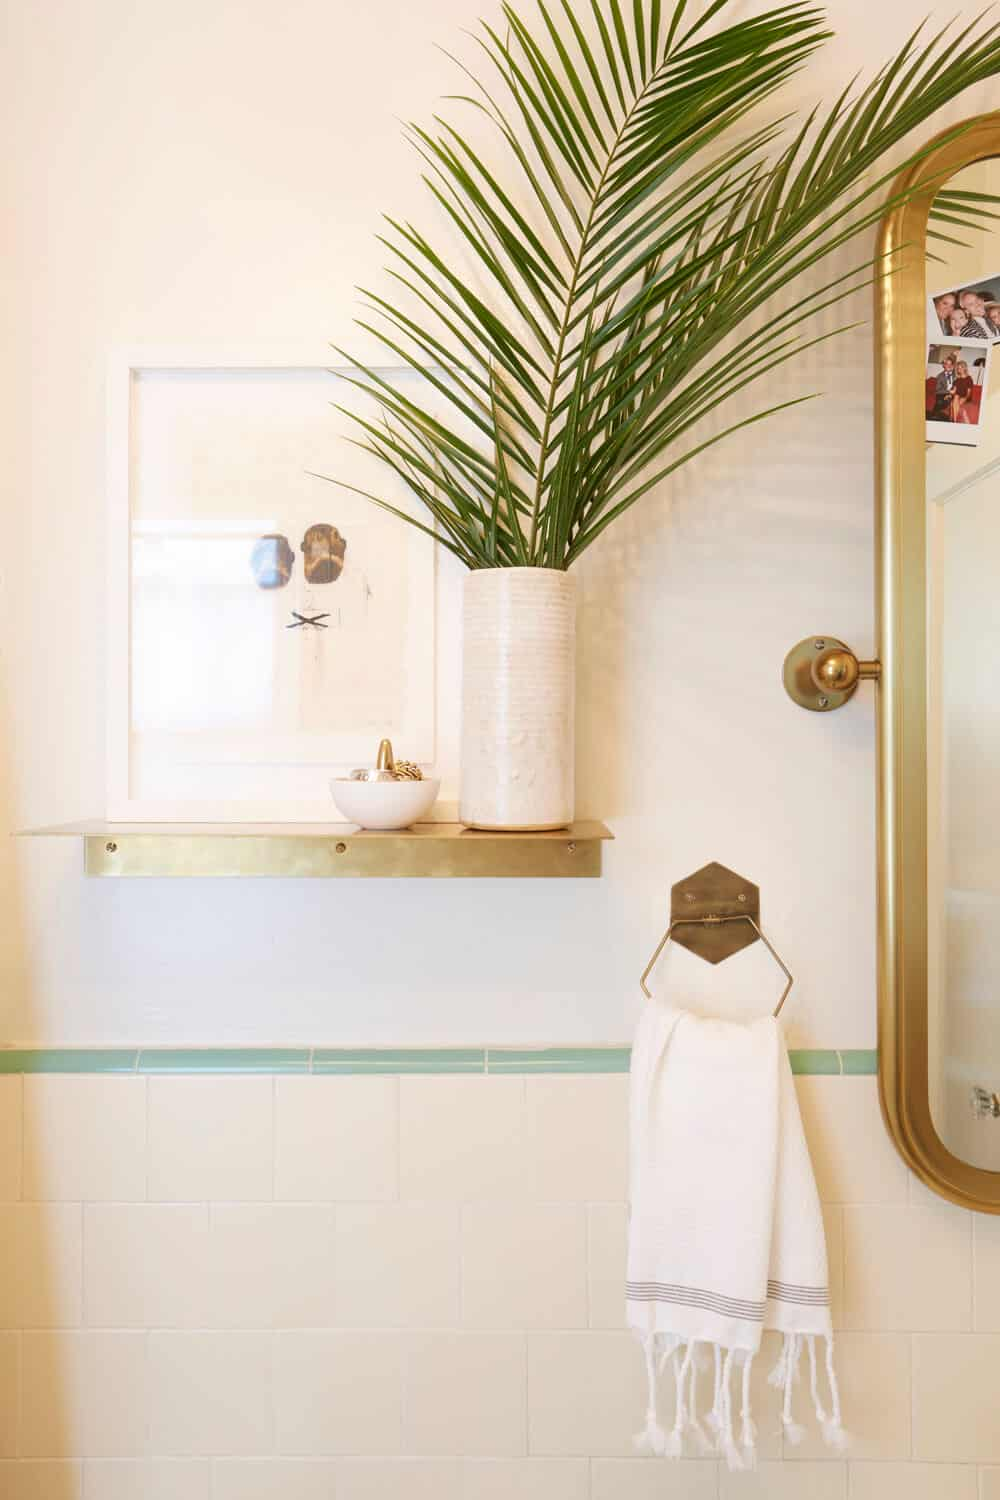 Apartment Rental Bathroom Makeover Takeover Redesign Brady Tolbert White and Turquoise_1_002